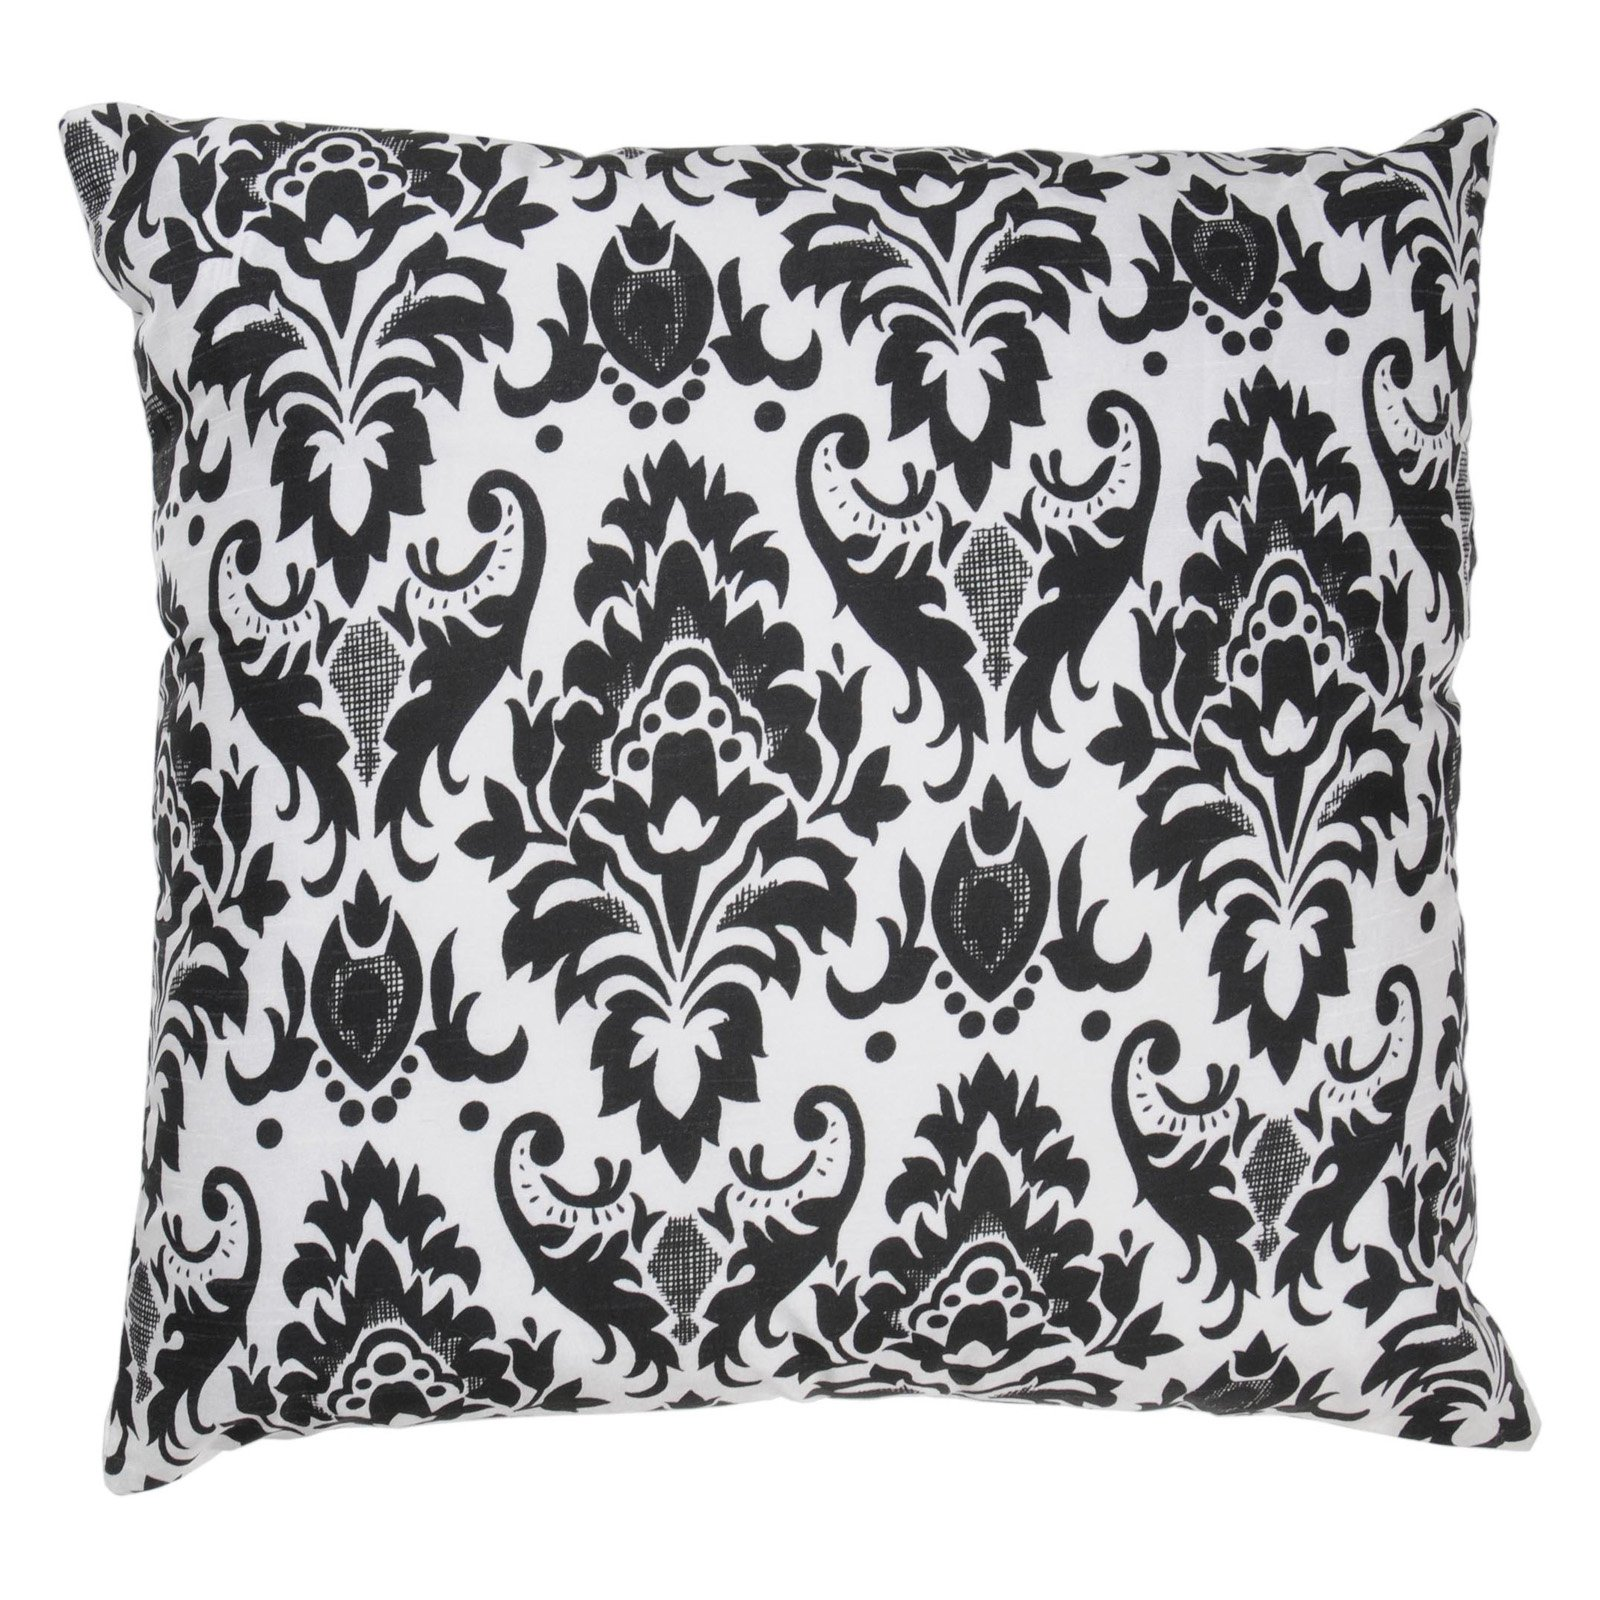 Rizzy Home Printed Black and White Decorative Throw Pillow